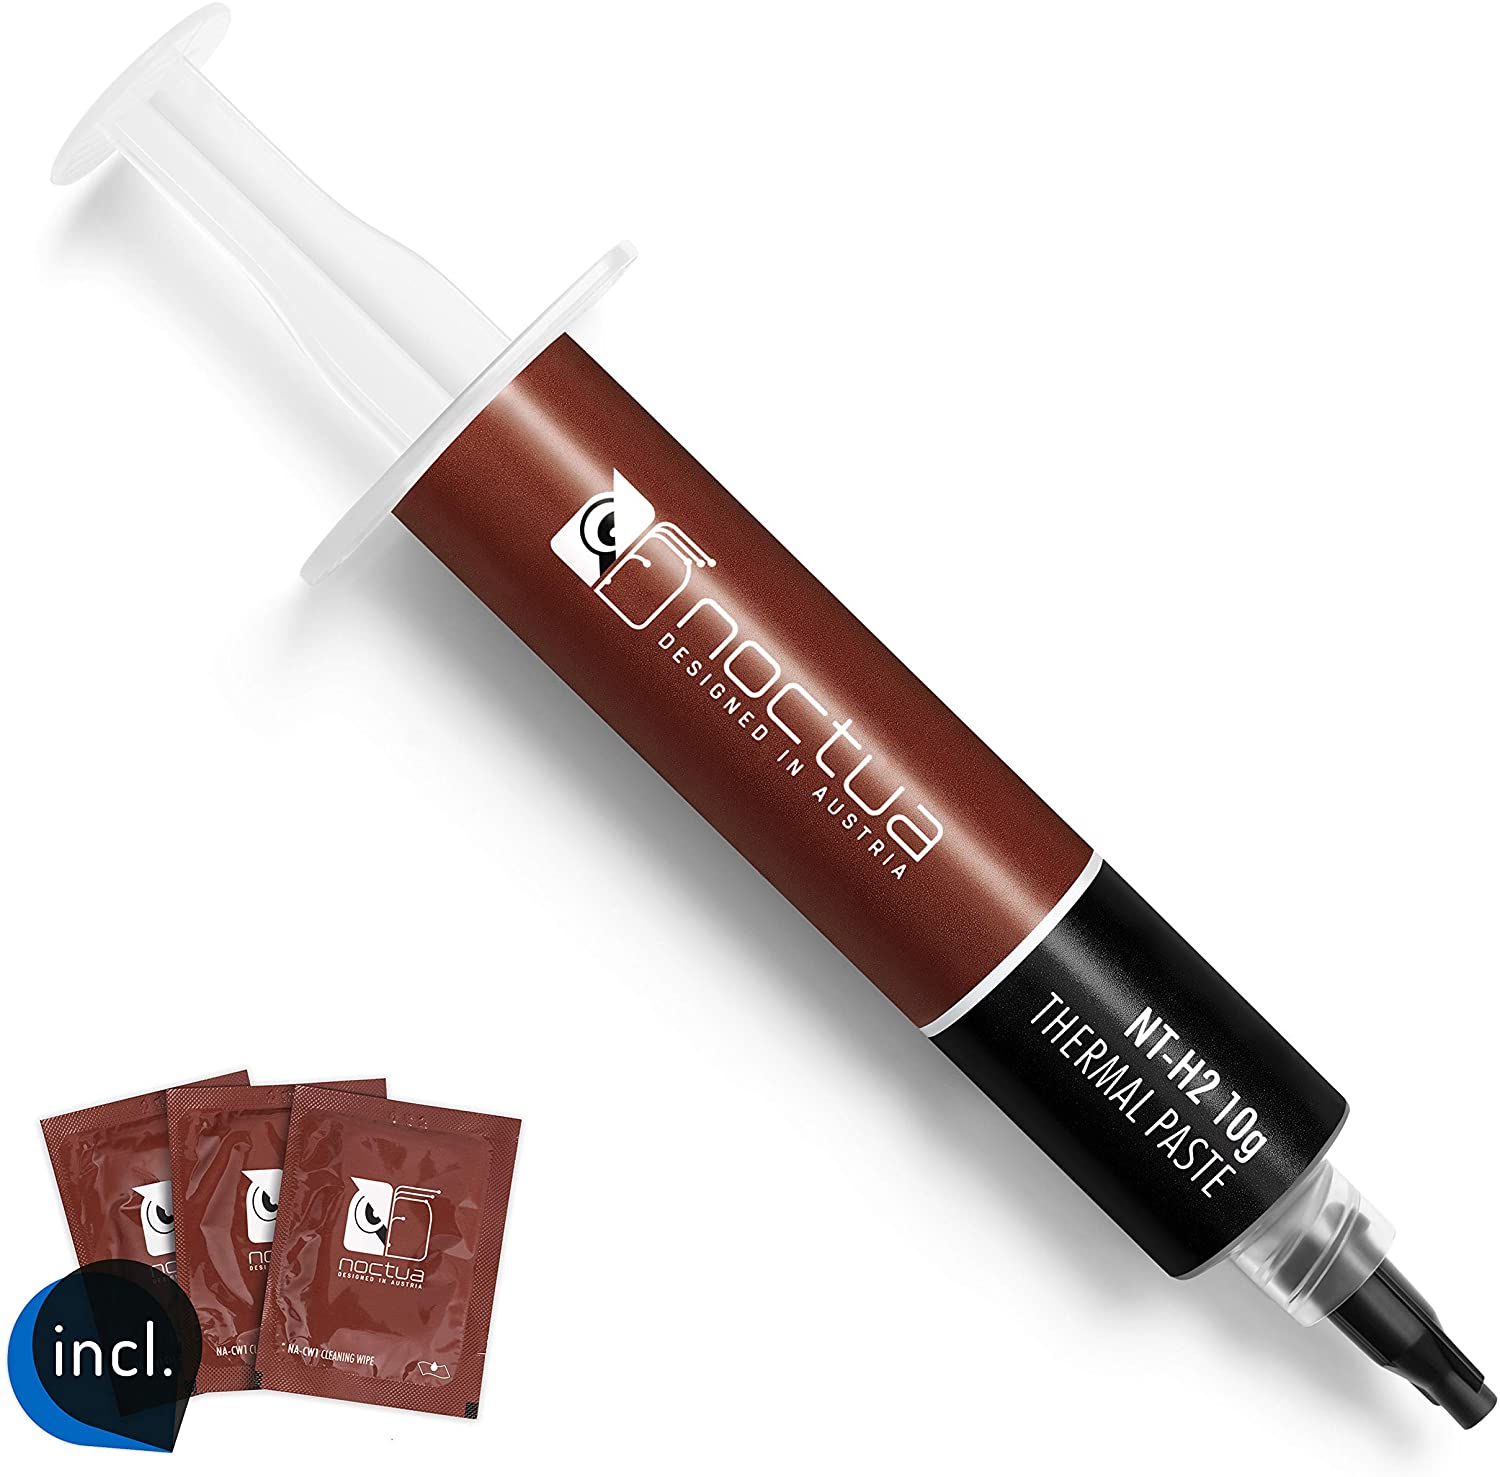 Noctua NT-H2 10g, Pro-Grade Thermal Compound Paste incl. 10 Cleaning Wipes (10g, Gray)